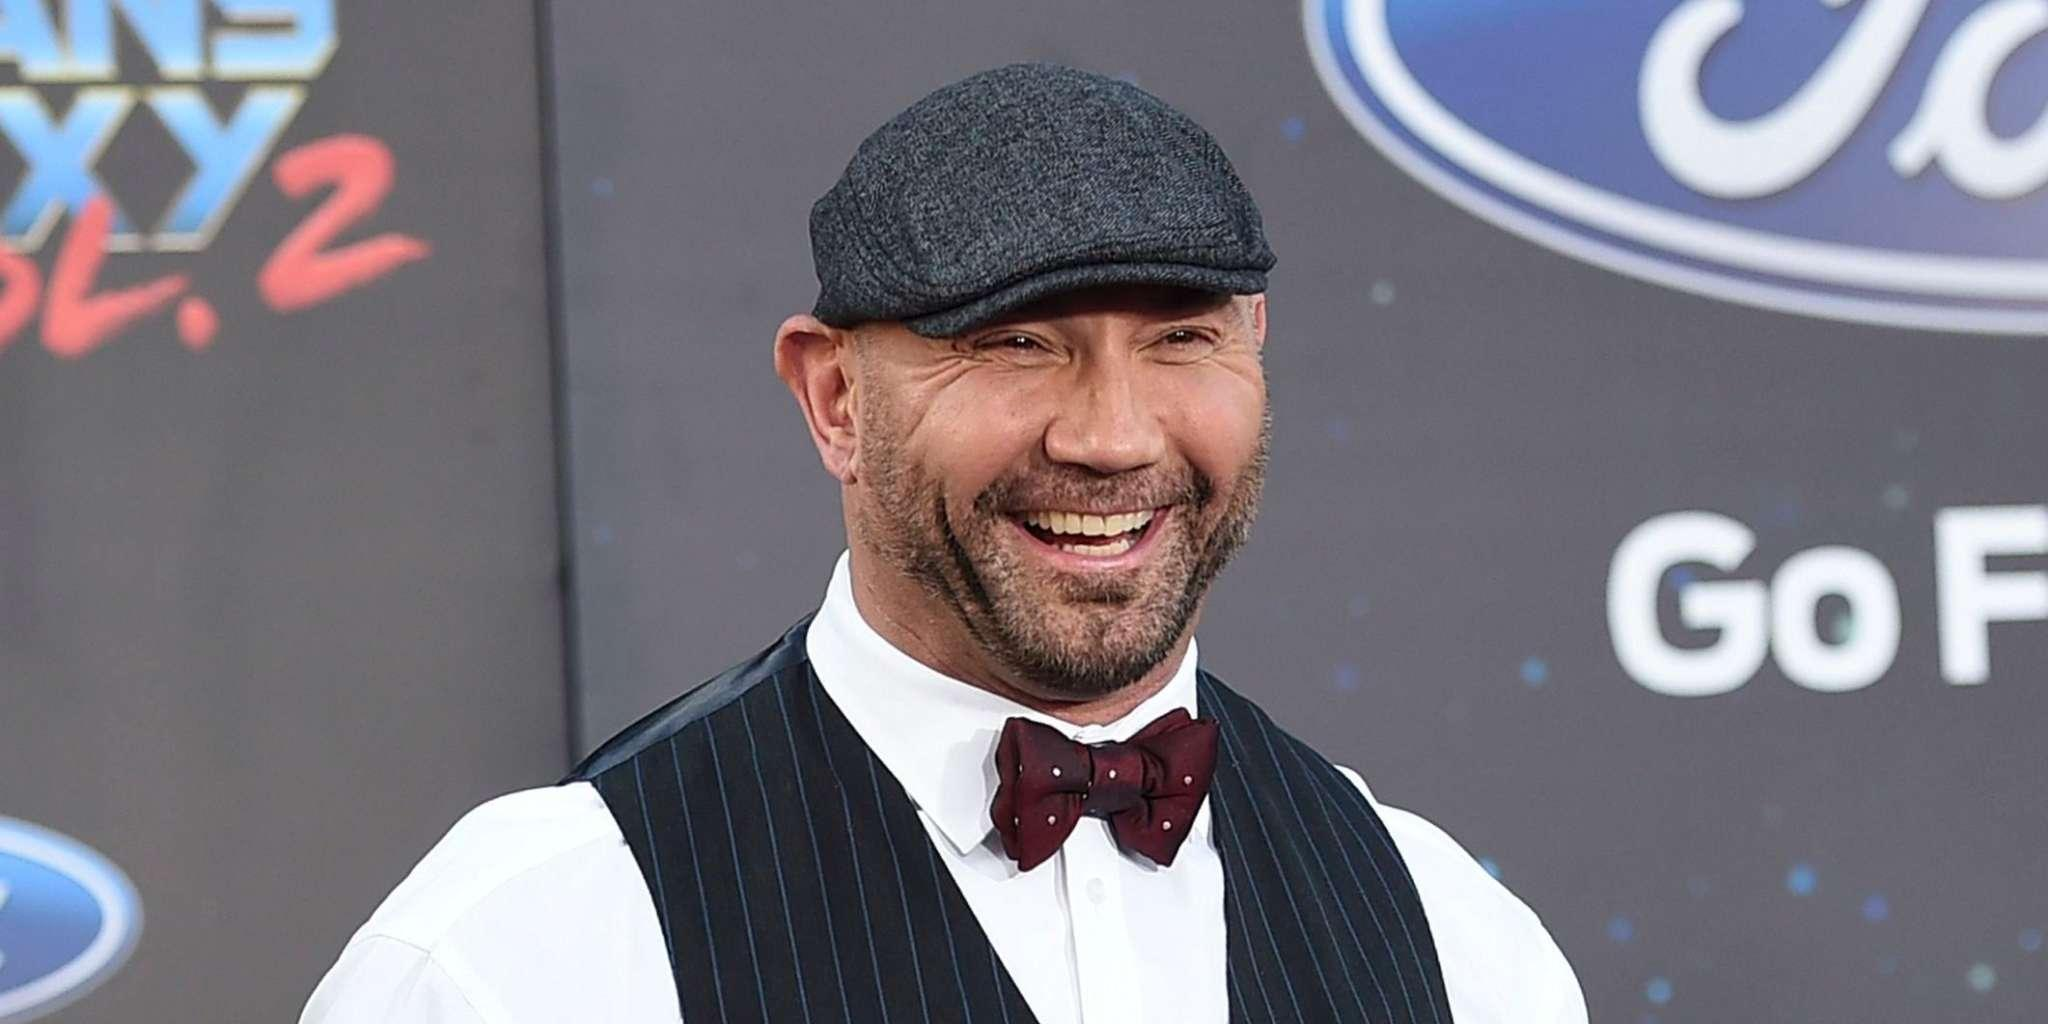 Dave Bautista Disses Vin Diesel's 'Fast & Furious' Legacy By Saying That He'd Rather Star In 'Good Films'